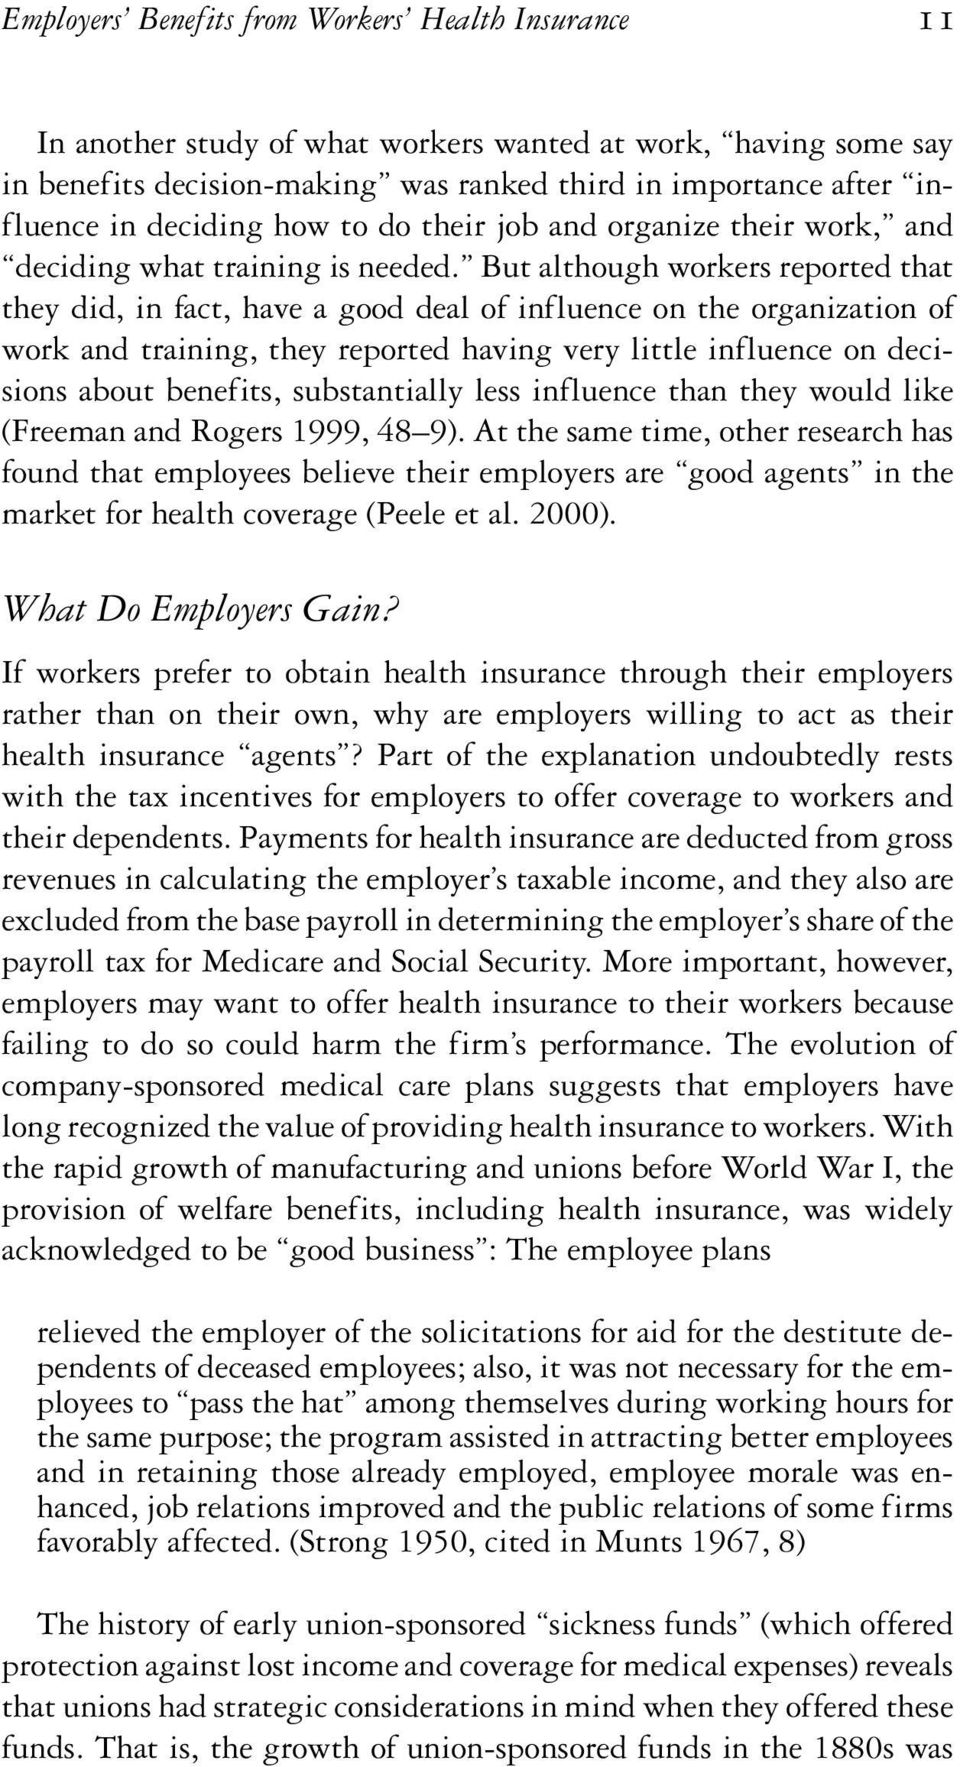 But although workers reported that they did, in fact, have a good deal of influence on the organization of work and training, they reported having very little influence on decisions about benefits,